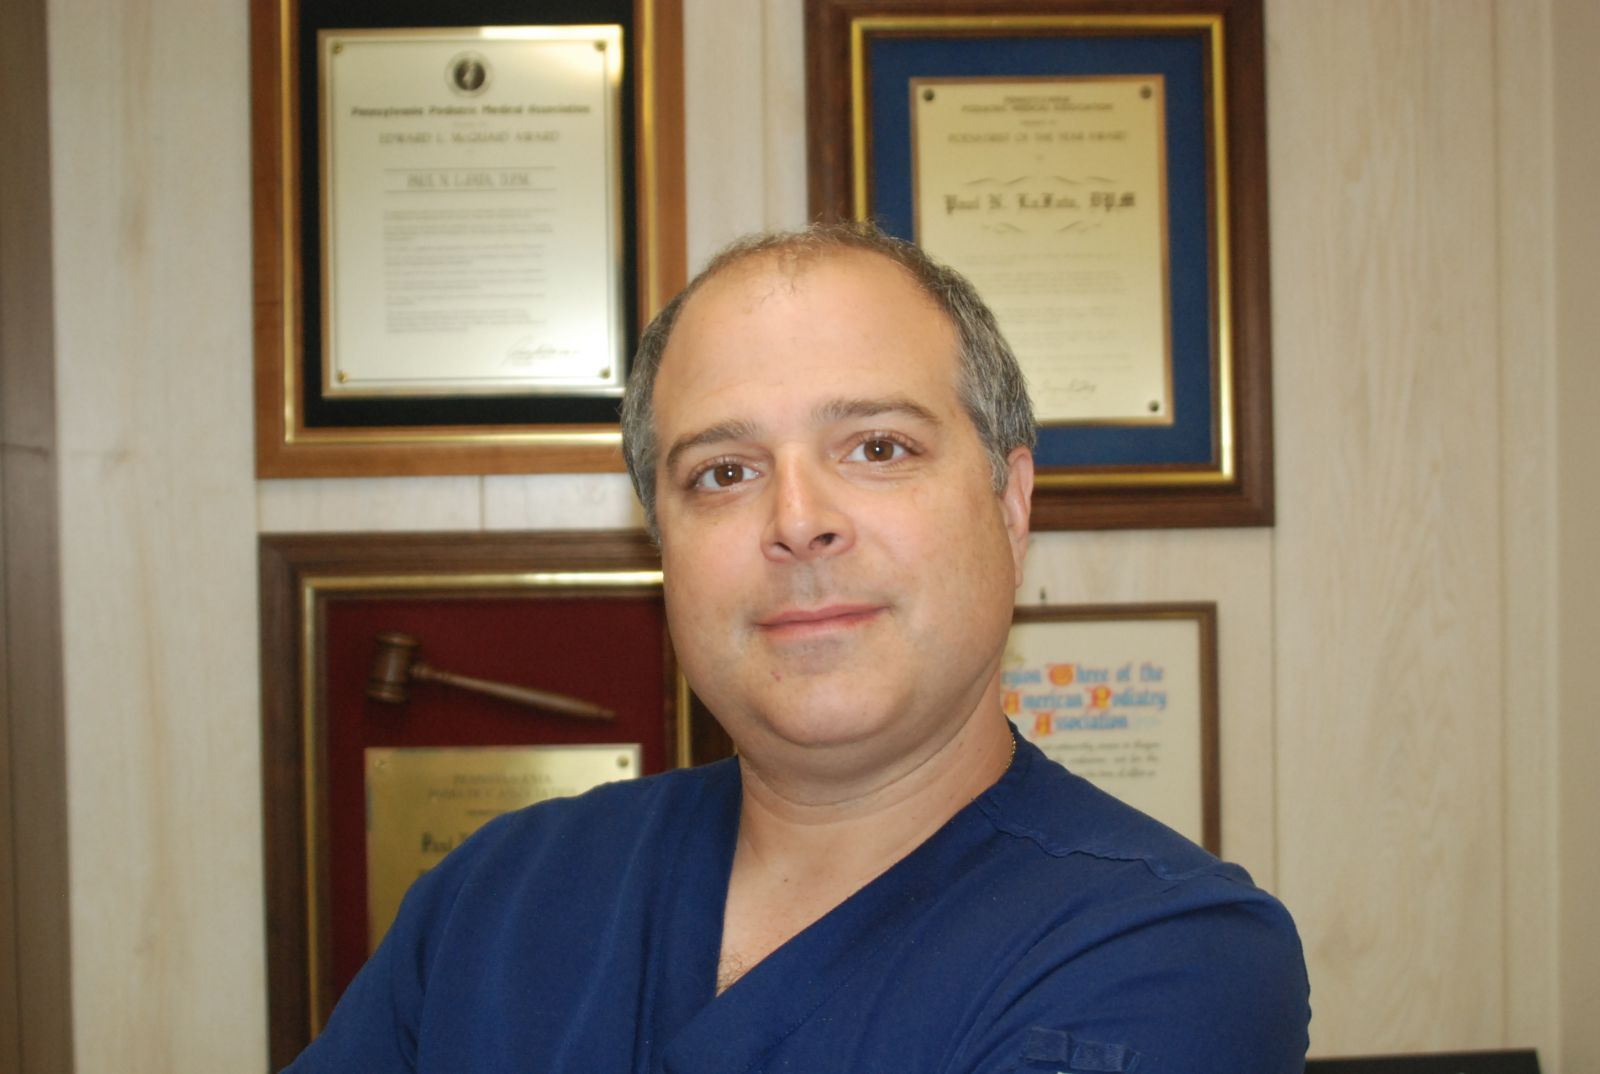 Dr. Paul C. LaFata of West Lawn Podiatry